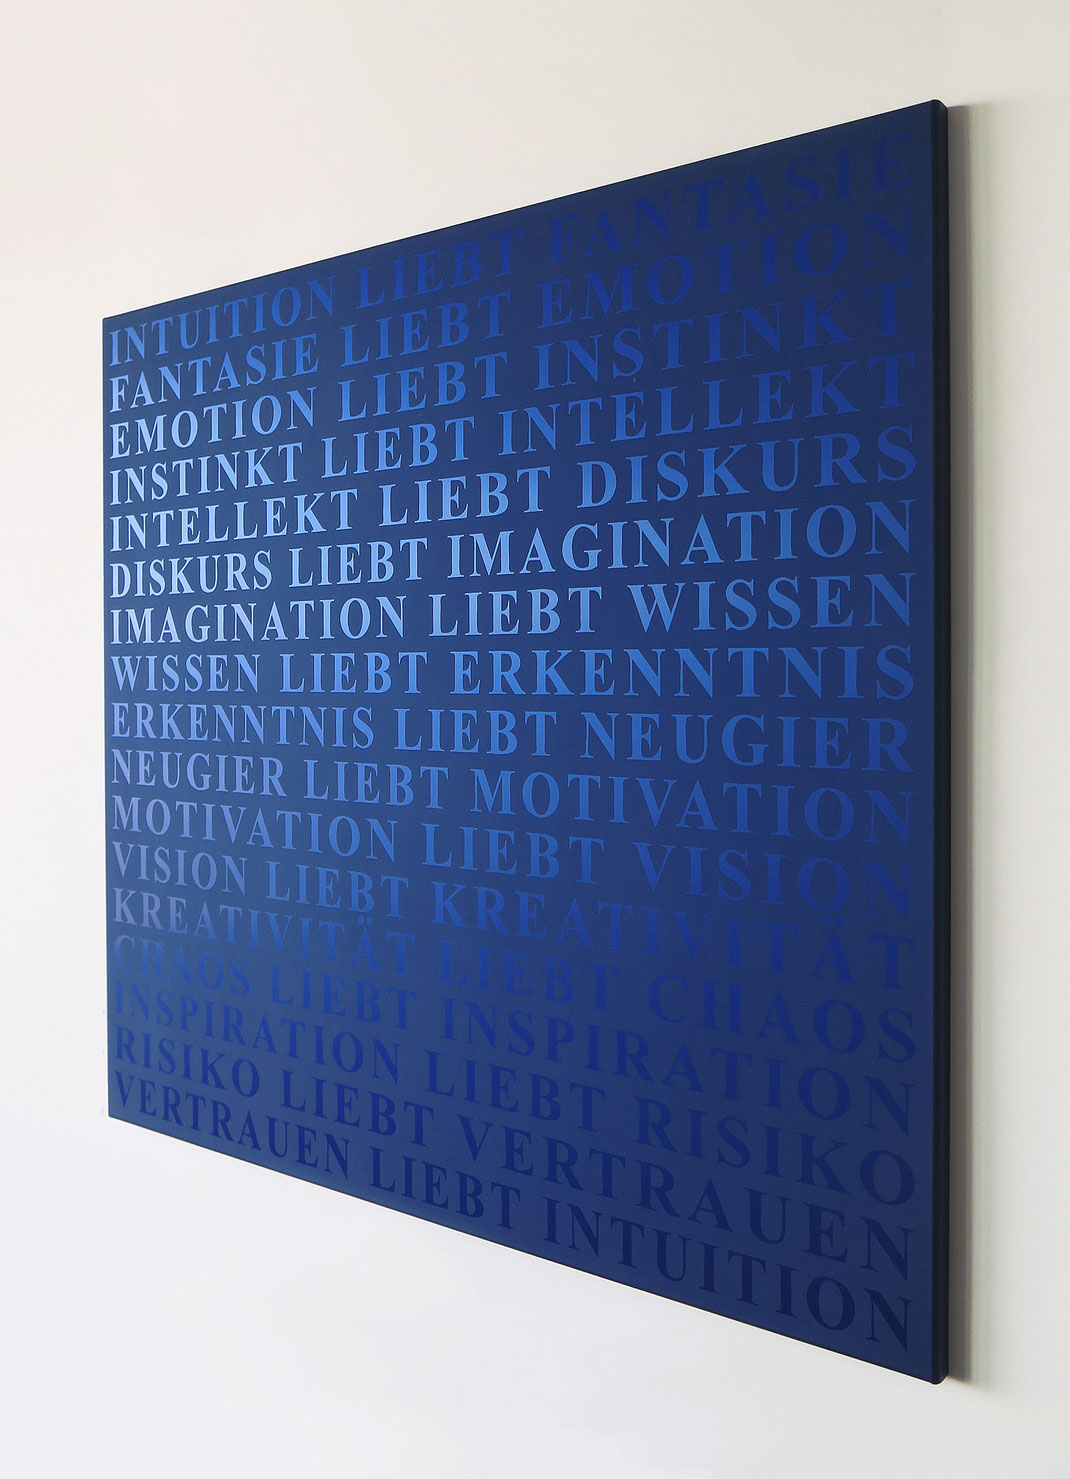 franticek-klossner-contemporary-art-gallery-da-mihi-bern-switzerland-aktuelle-schweizer-kunst-visual-poetry-writing-pictures